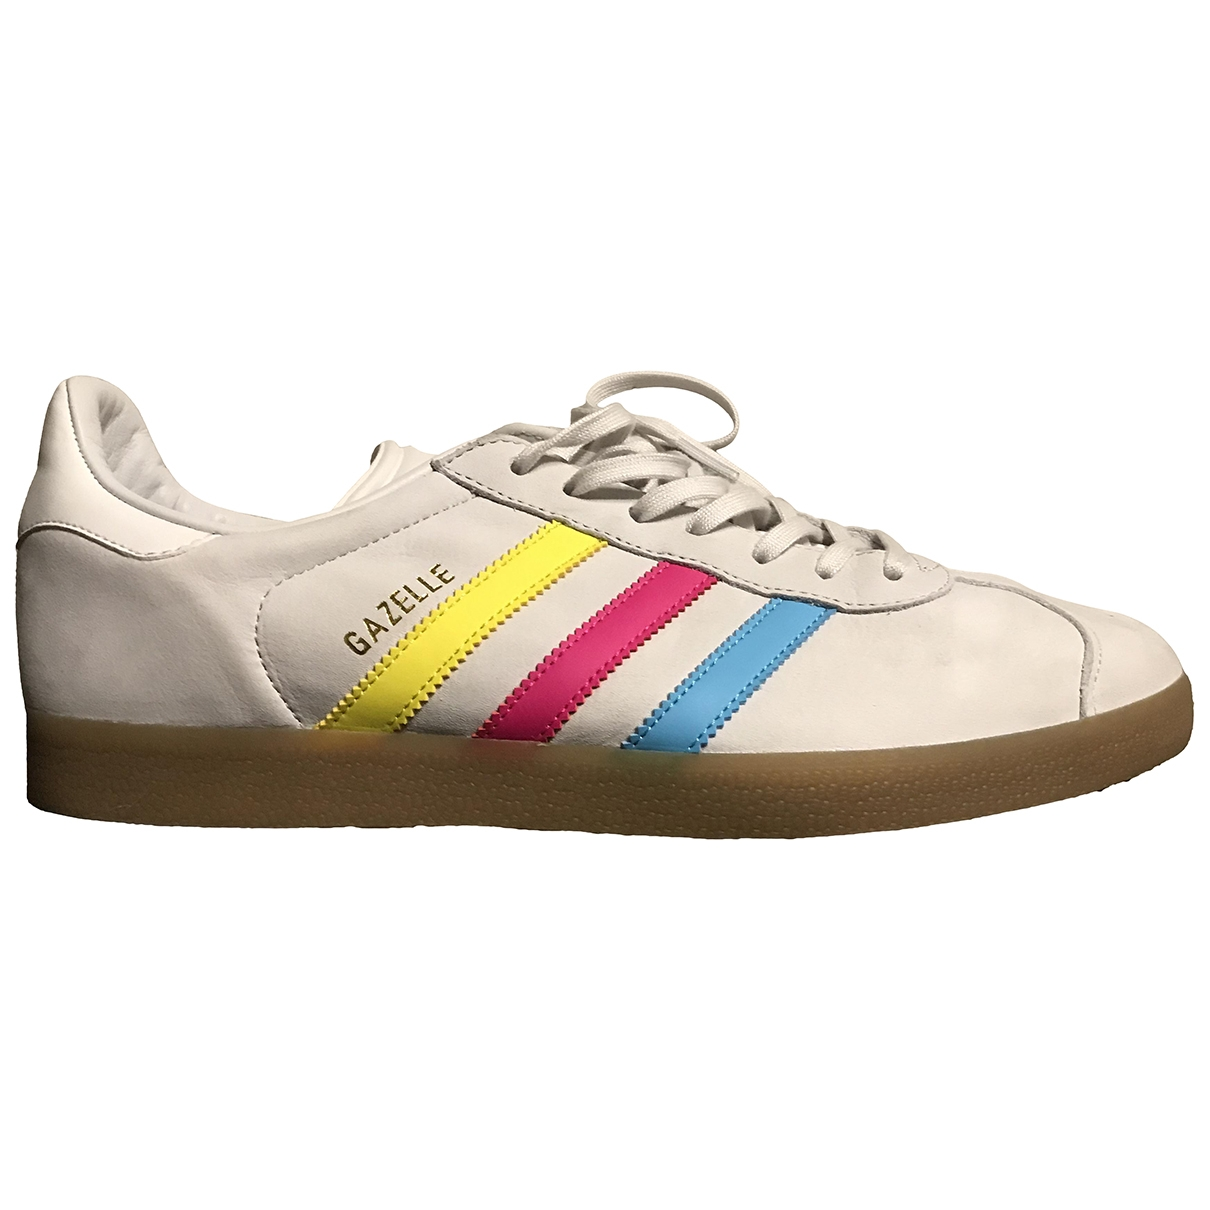 Adidas Gazelle Ecru Leather Trainers for Men 11 US